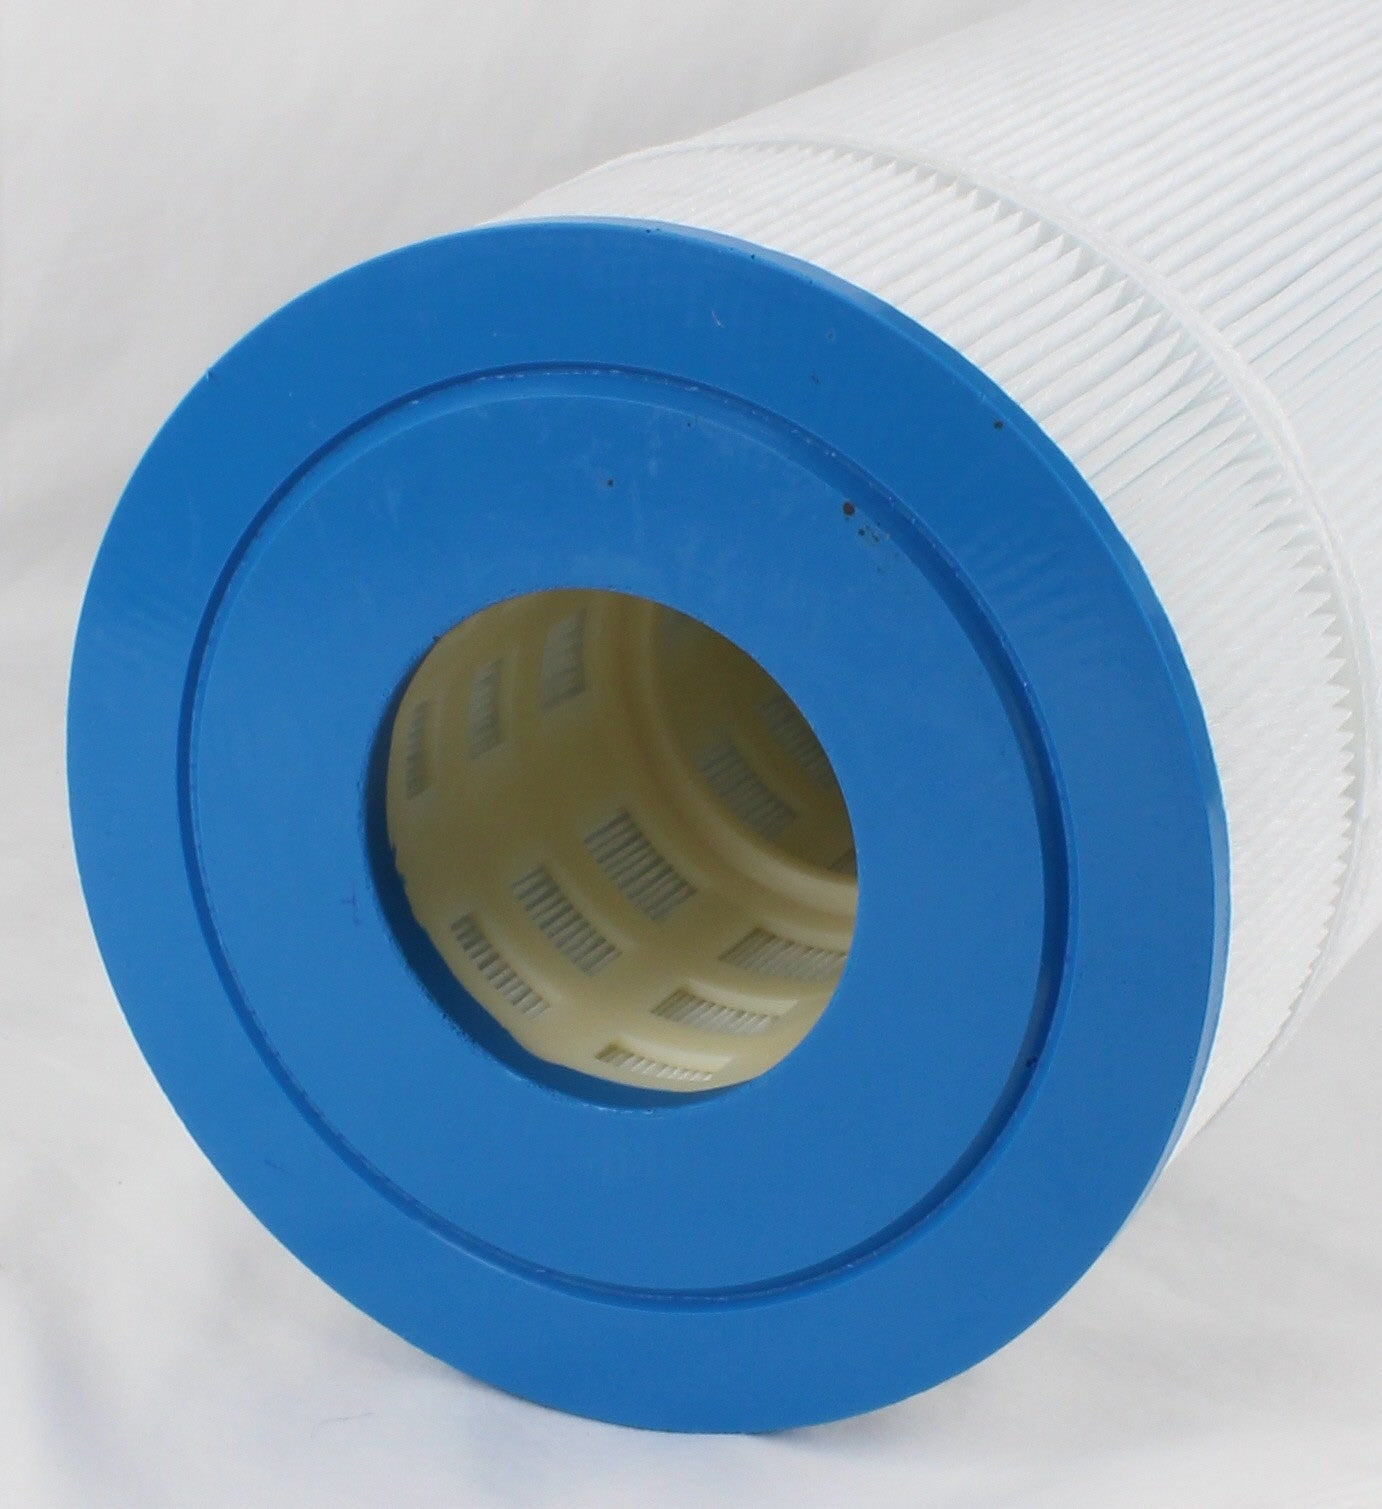 Guardian Filtration 725-164 Pool & Spa Filter Cartridge-Filter Cartridge-FilterDeal.com